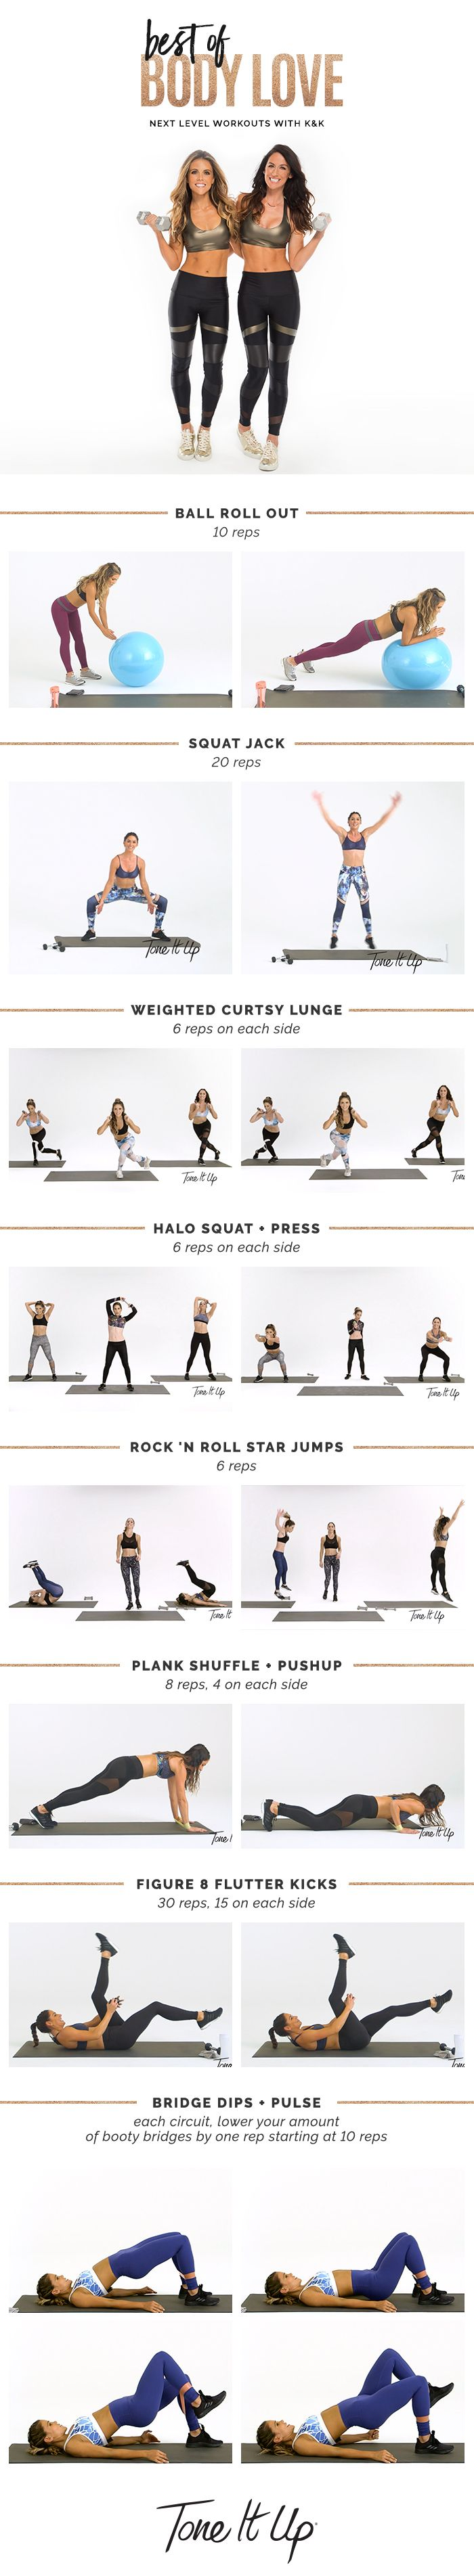 Are you READY for this?! If you haven't already tried the BODY LOVE workouts, you're in for a treat! We put together our favorite moves from each routine to create the ultimate sweat sesh! We had so much fun making BODY LOVE that we couldn't help but put together a mashup for... #body #bodylove #it